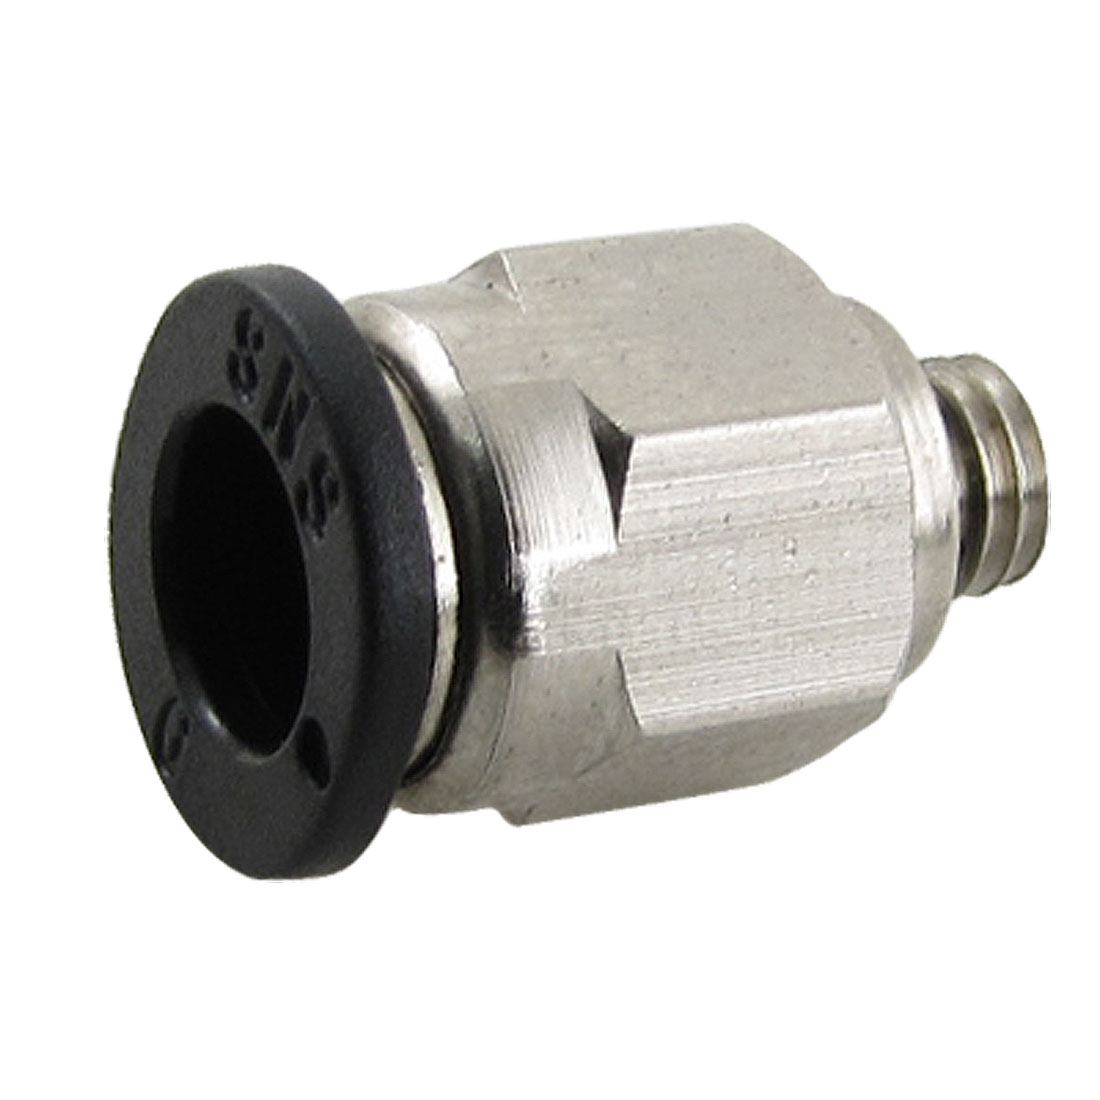 4mm x 5mm Straight Quick Connector Pneumatic Fittings